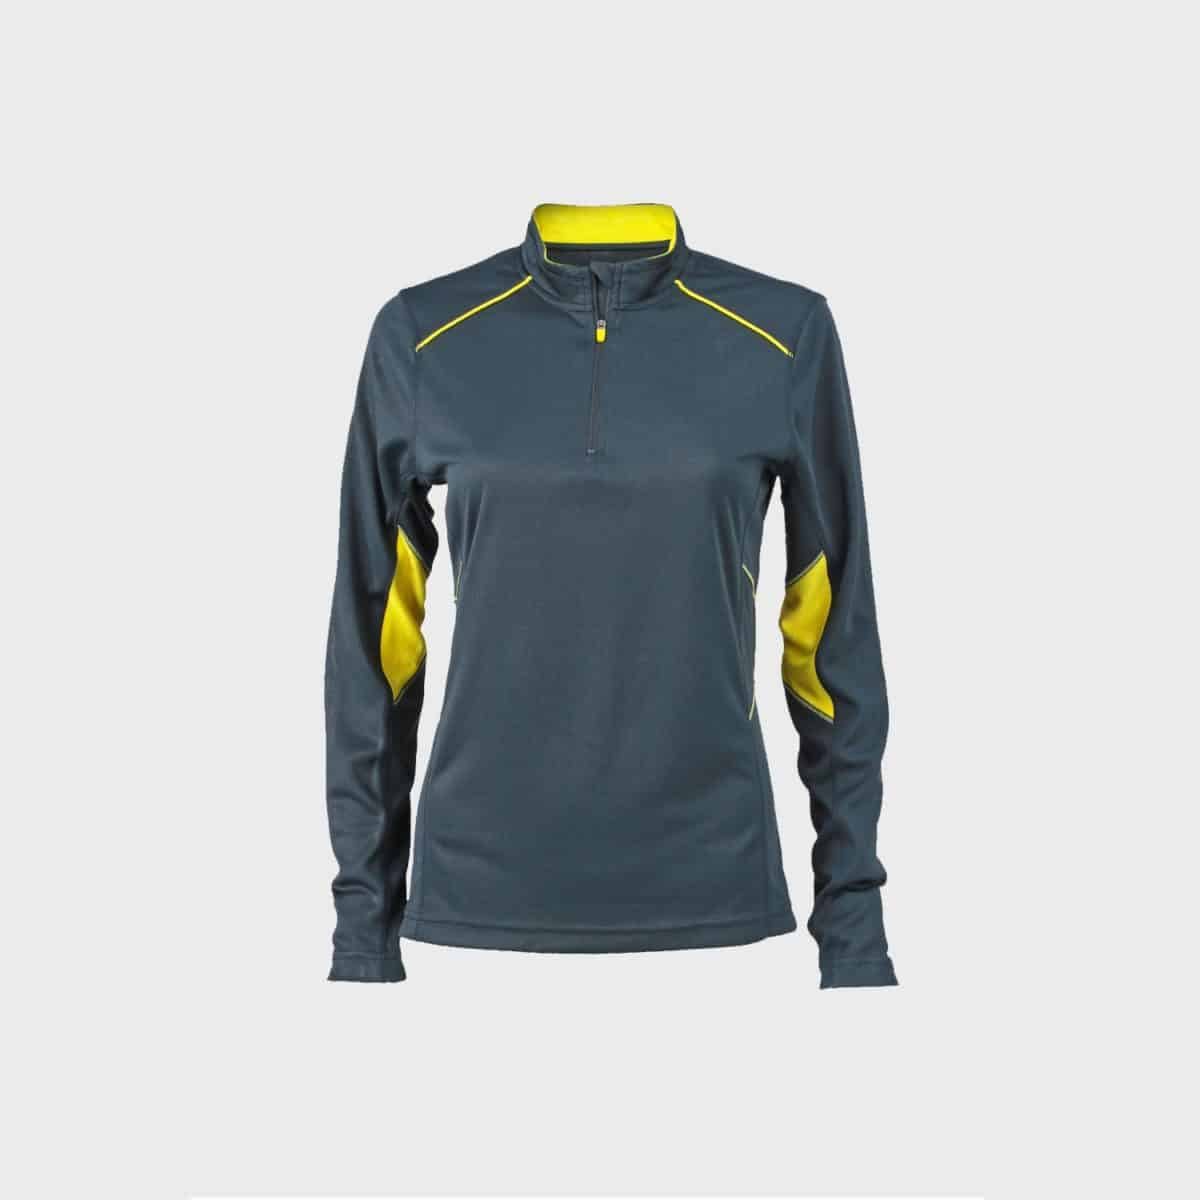 running-shirt-damen-iron-grey-lemon-kaufen-besticken_stickmanufaktur